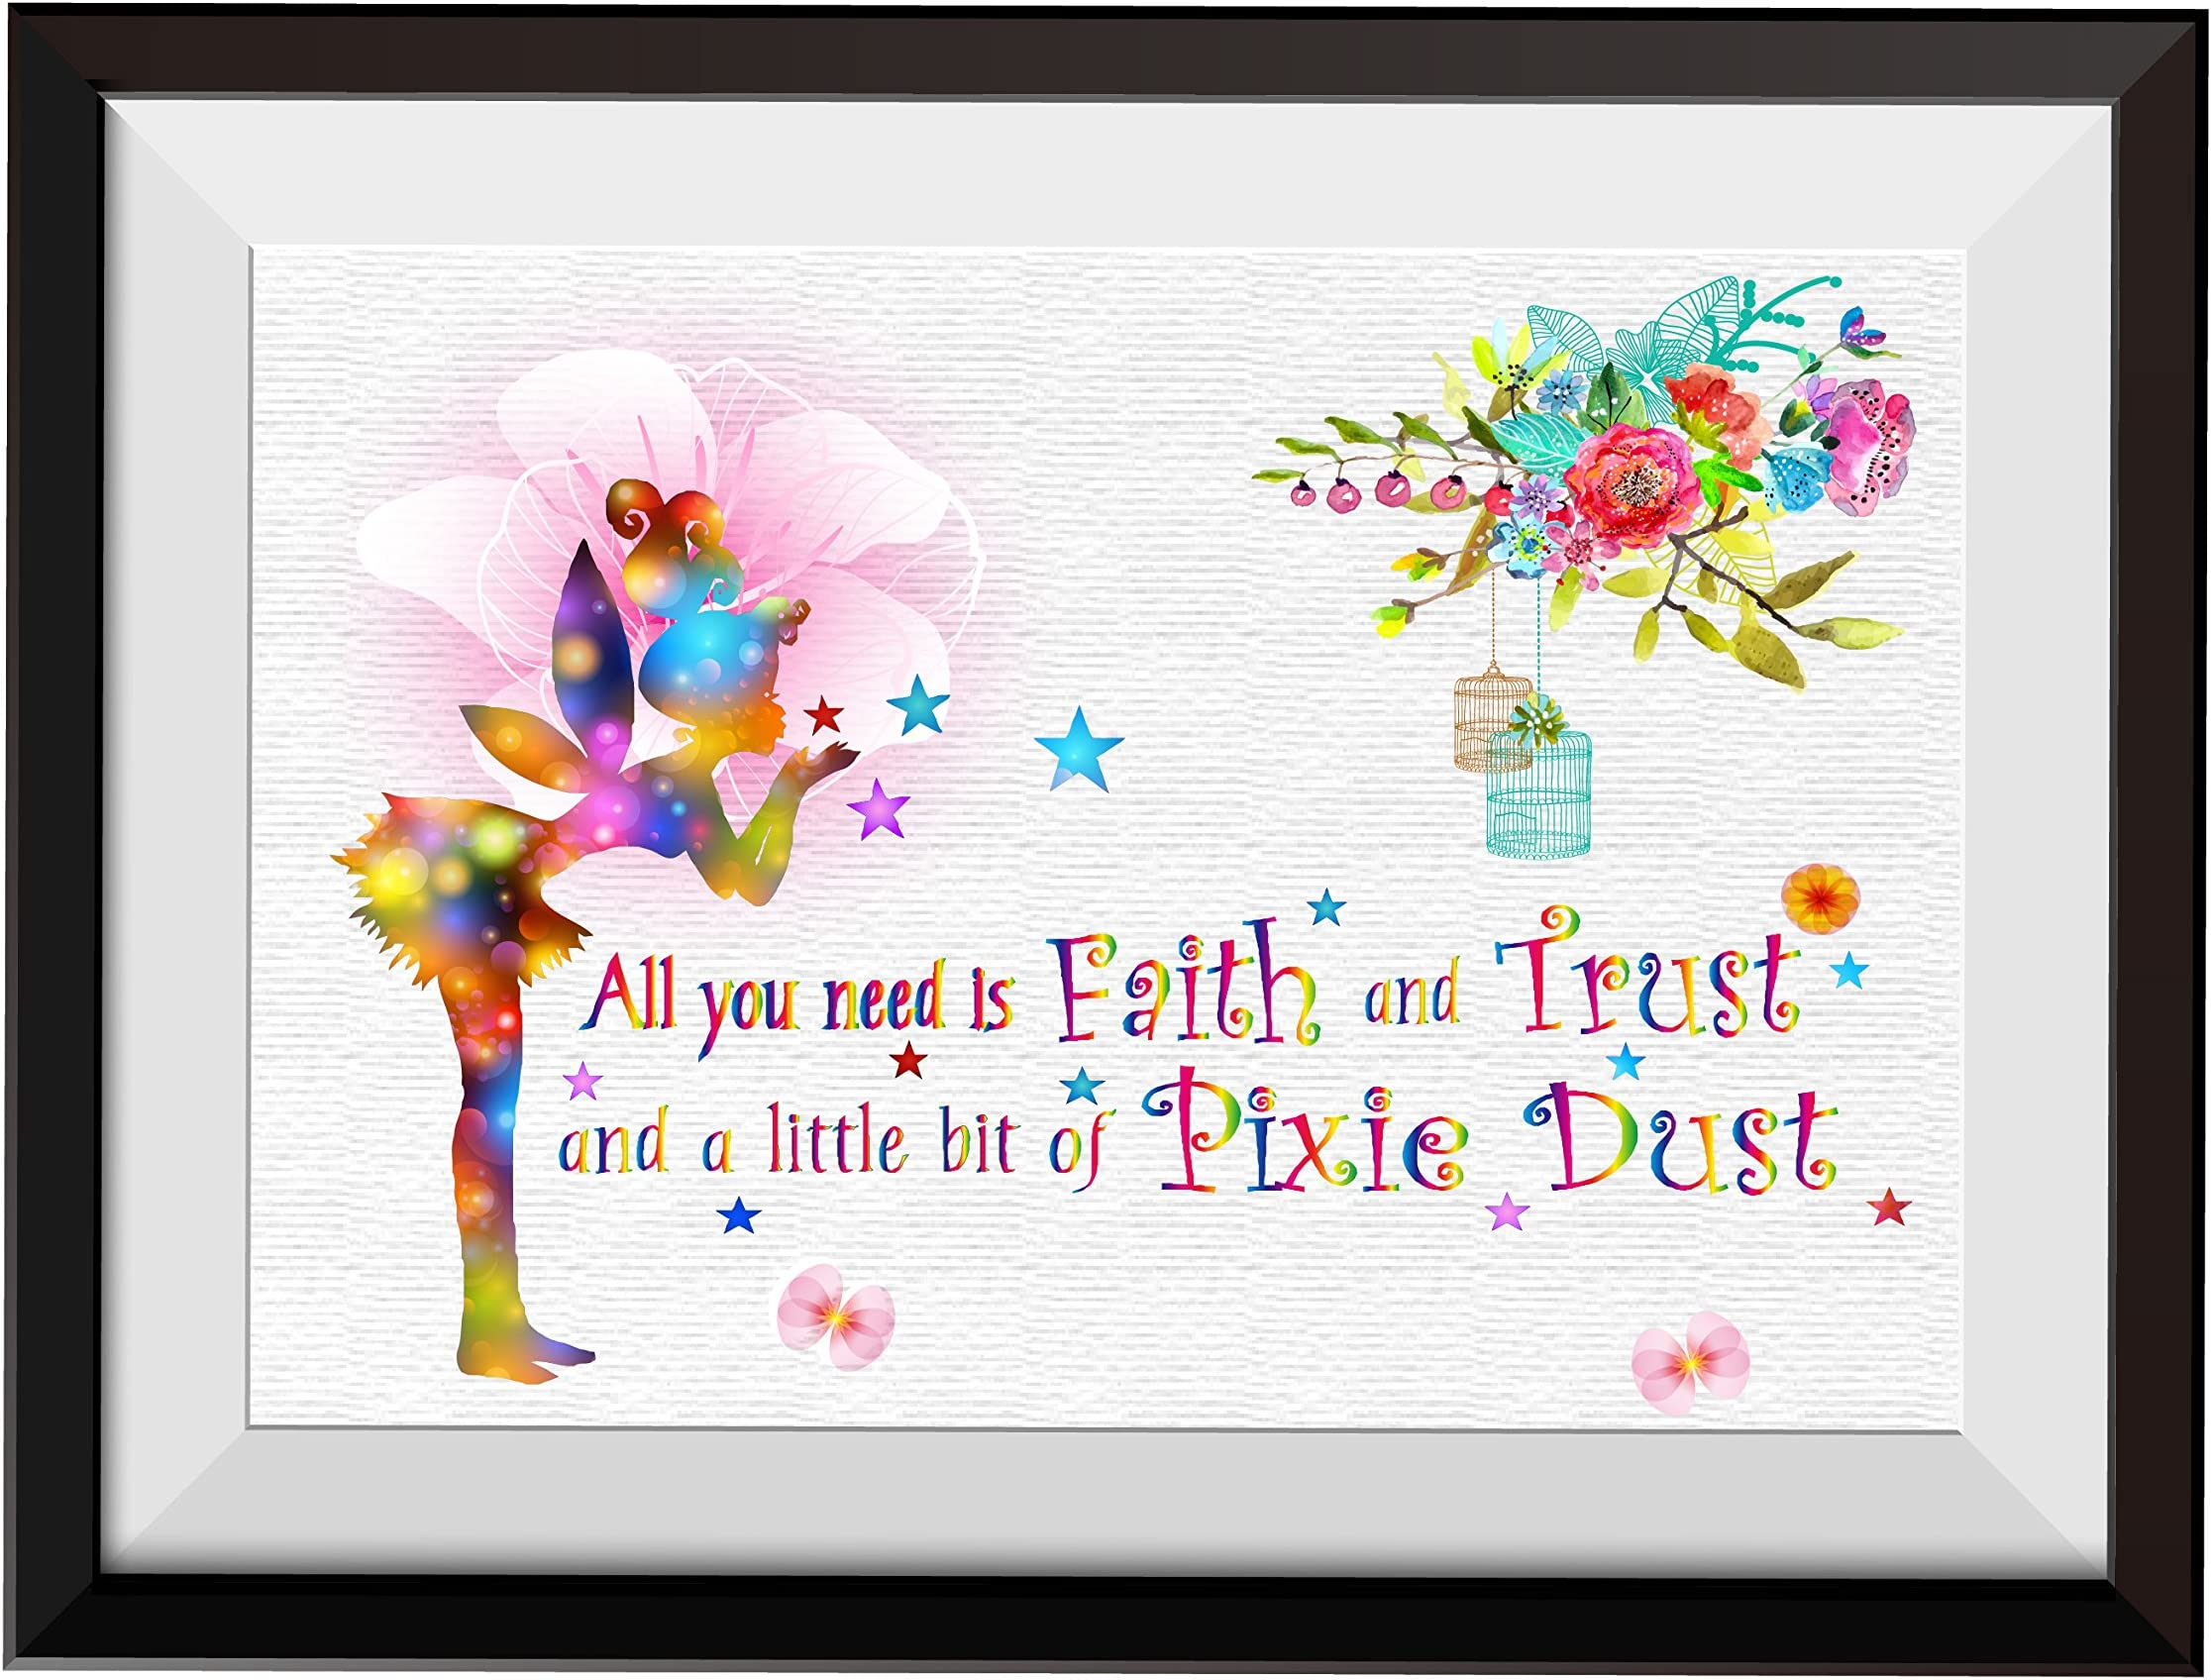 and a Little Bit of Pixie Dust Trust Kids Room Decor Princess Decoration Motivational Saying Pink Wall Decals for Girls FairyAll You Need is Faith